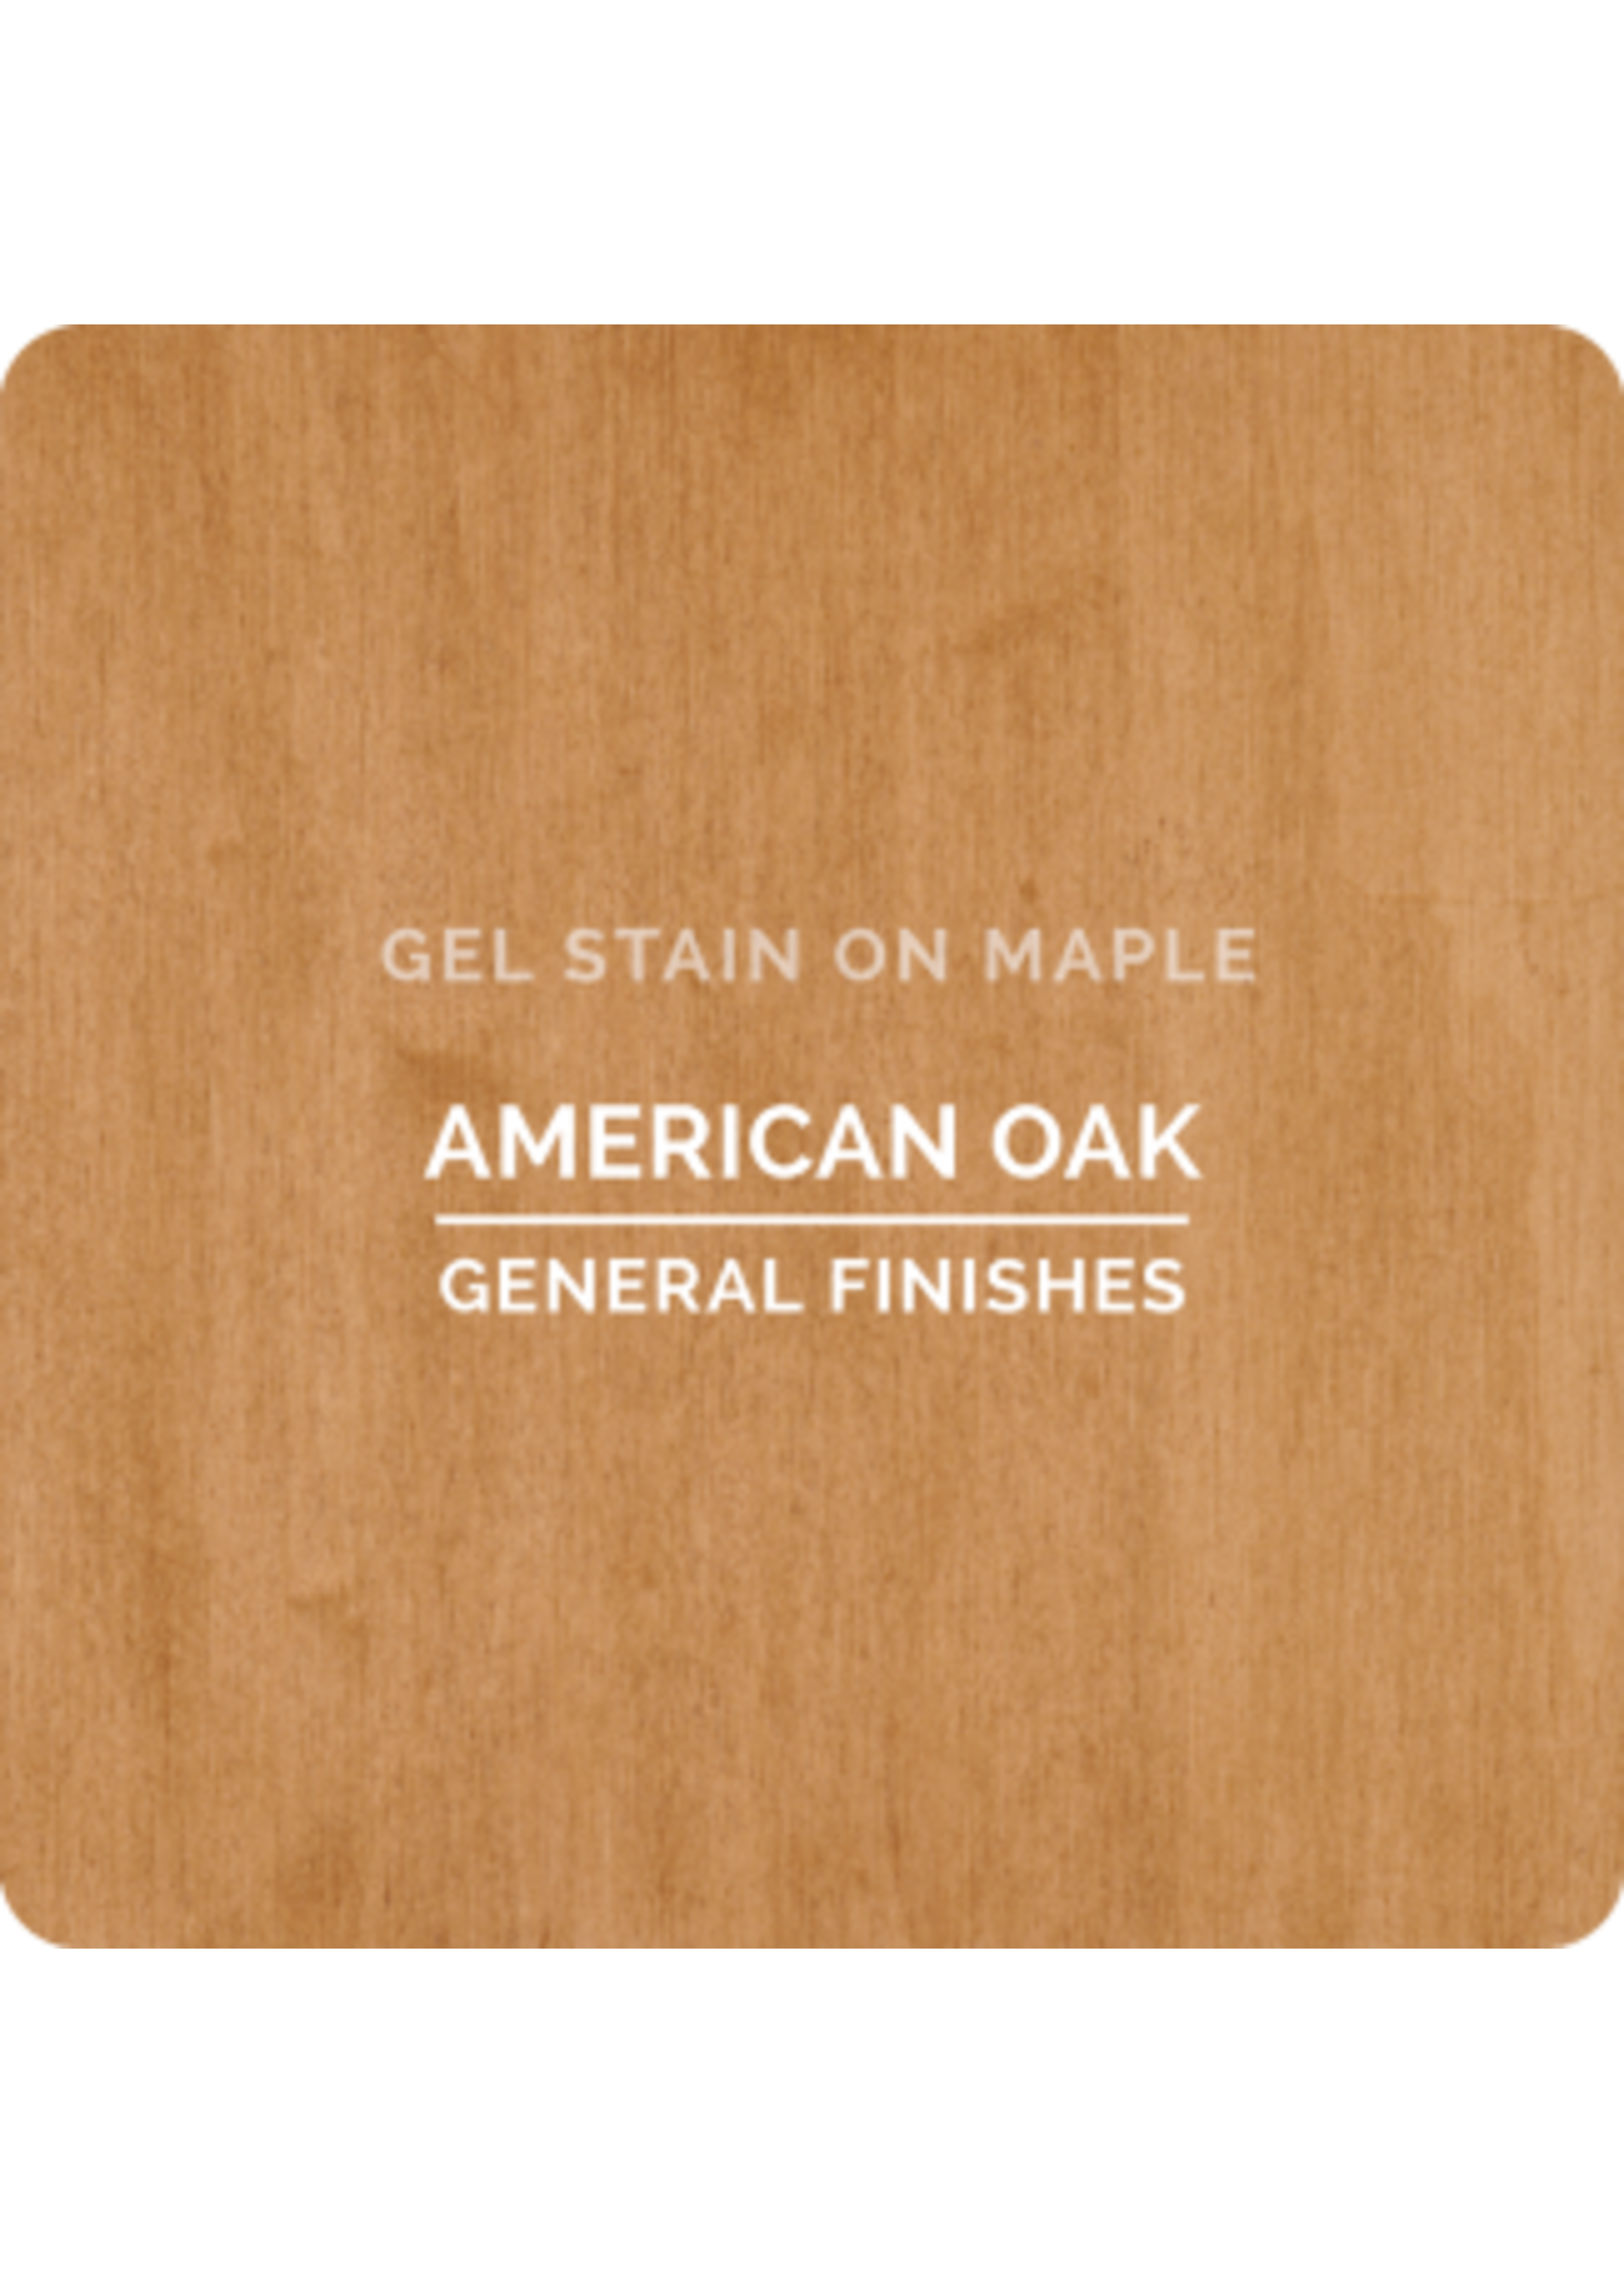 General Finishes American Oak General Finishes Gel Stain